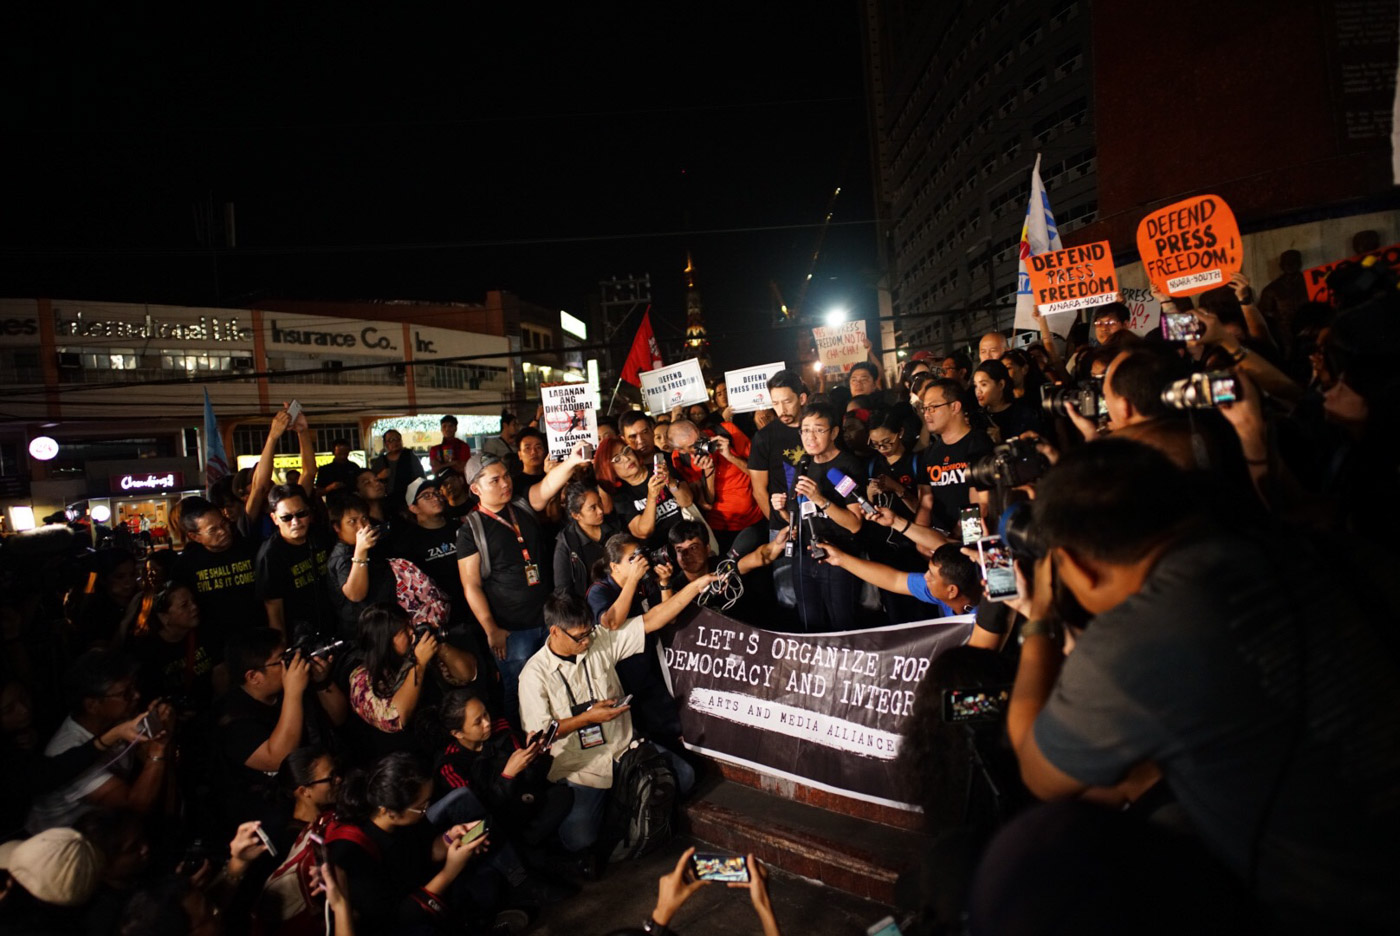 BLACK FRIDAY. The #BlackFridayForPressFreedom gathers at least 300 attendees from media groups, press freedom advocates, student groups, artist groups, and the academe. Photo by Martin San Diego/Rappler